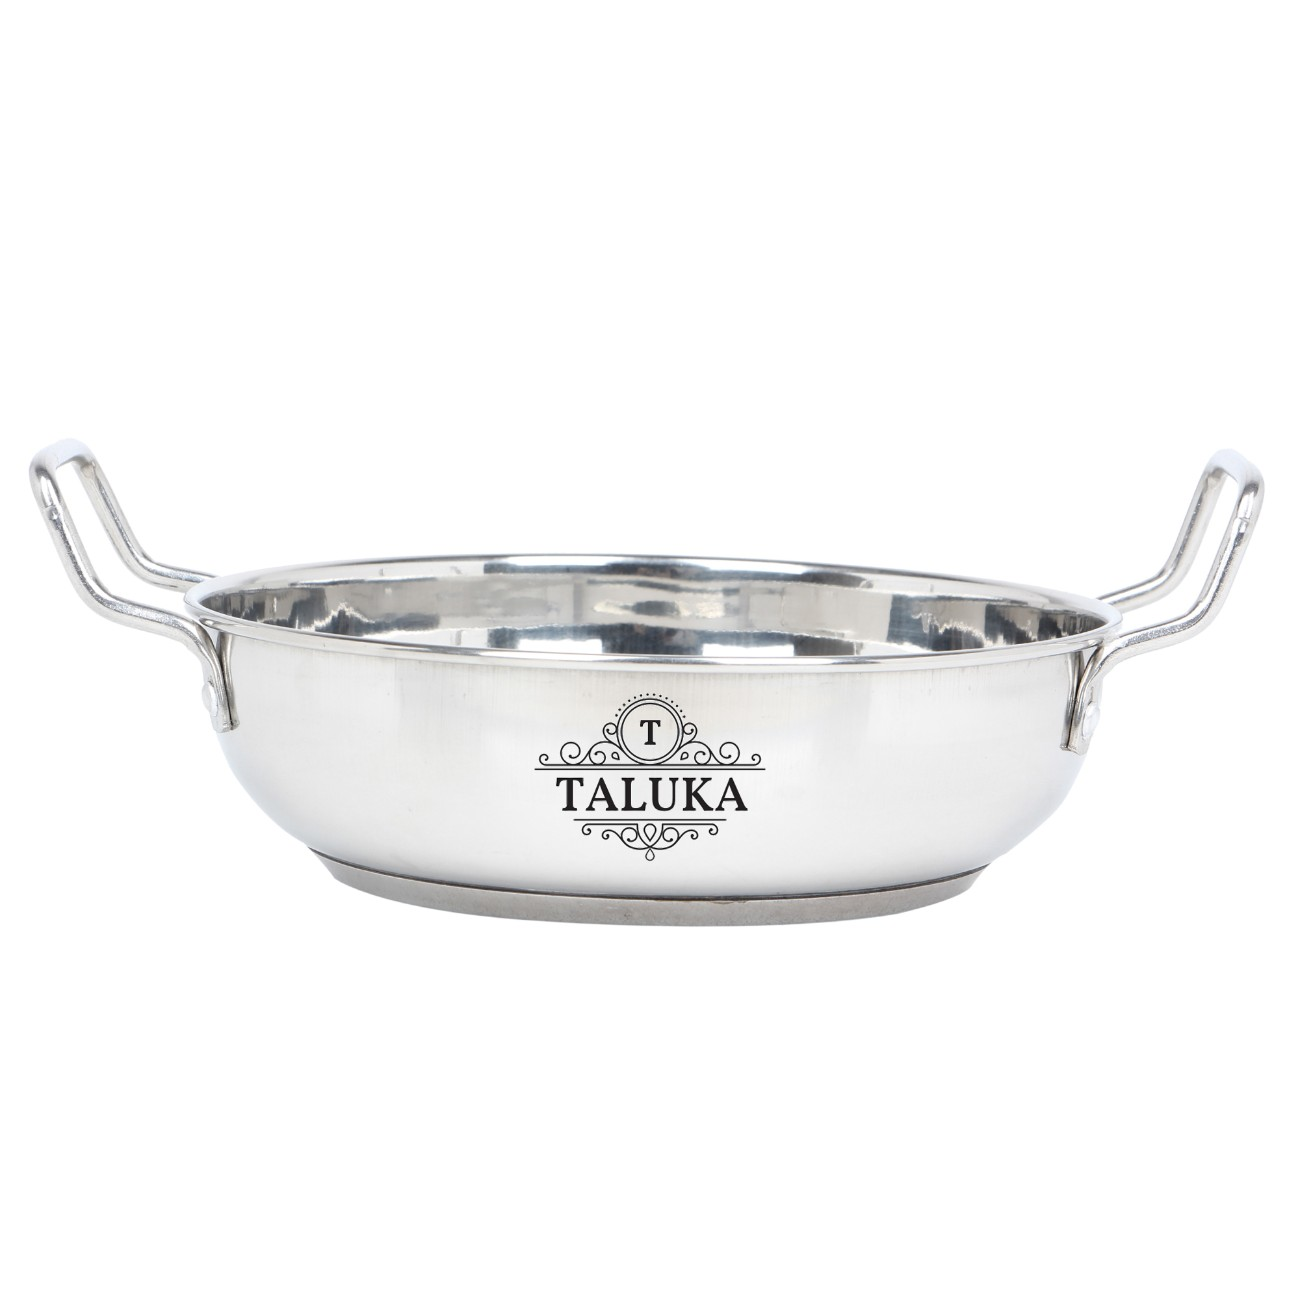 Stainless Steel Induction Friendly Kadai Serving Kadhai Wok For Kitchen